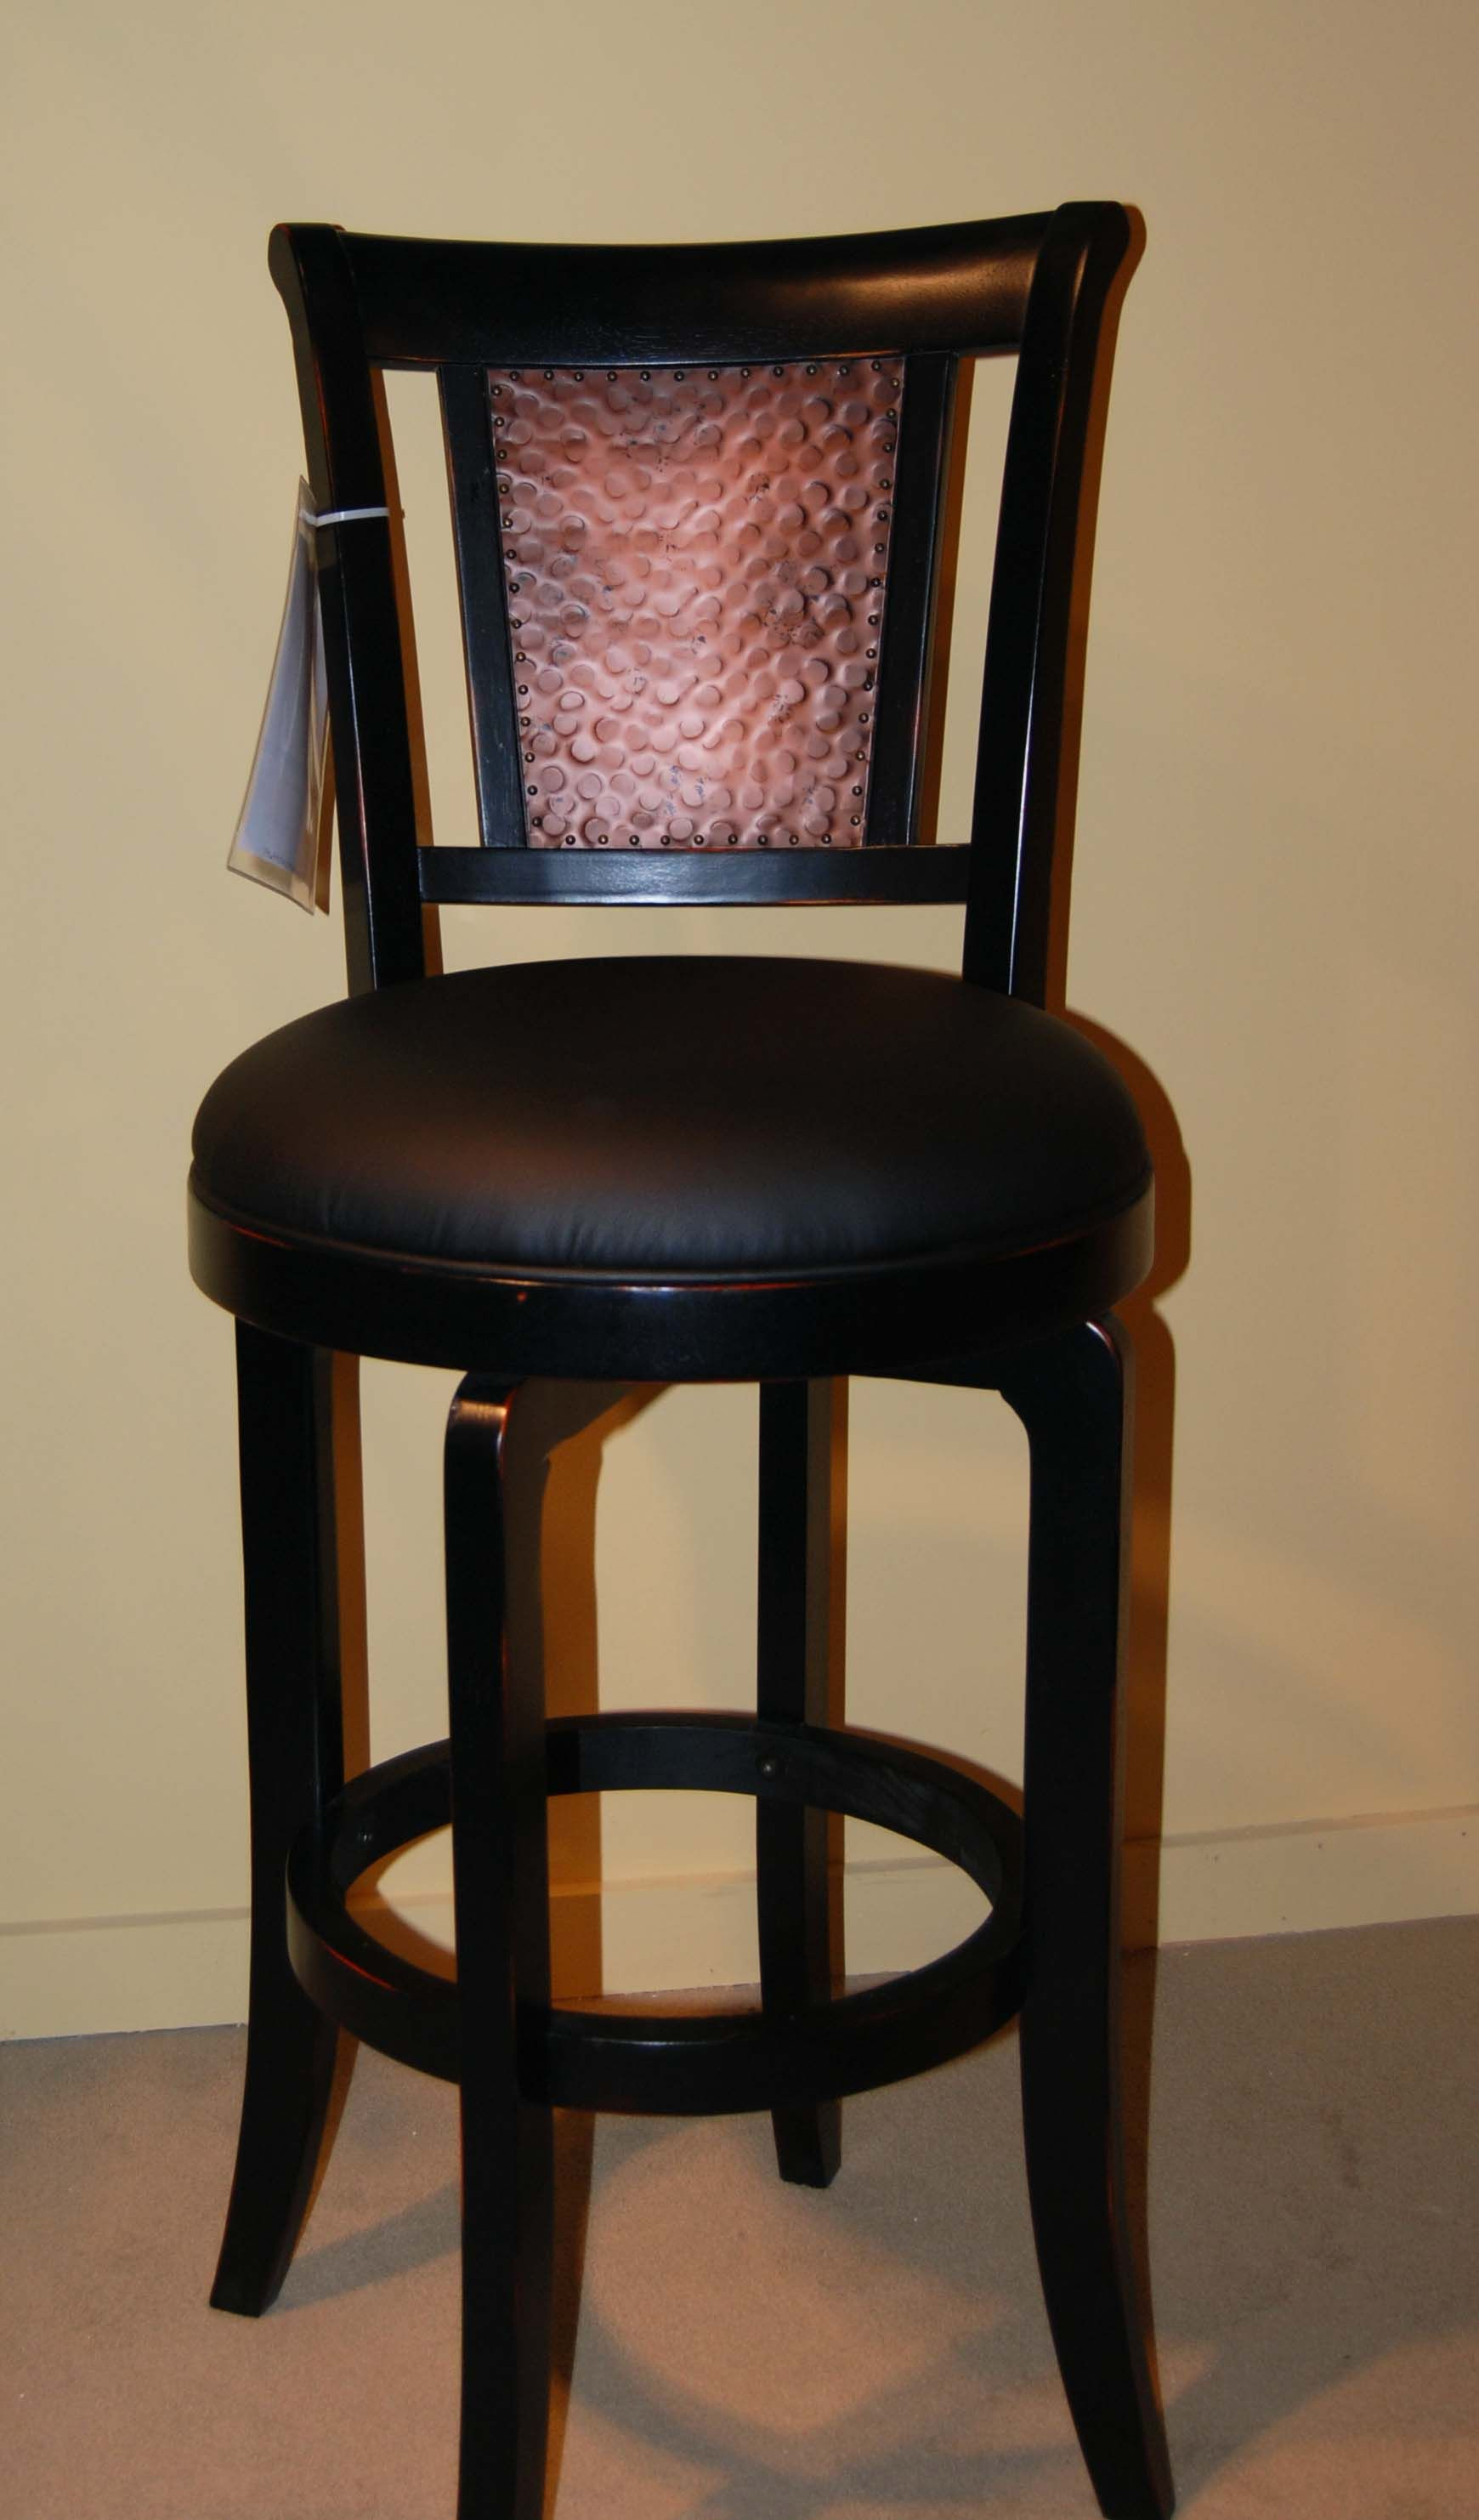 Furniture Black Wooden Swivel Bar Stools Having Round Black Leather Seat Cover And Wooden Back Remarkable Barhocker Barhocker Holz Barhocker Mit Ruckenlehne